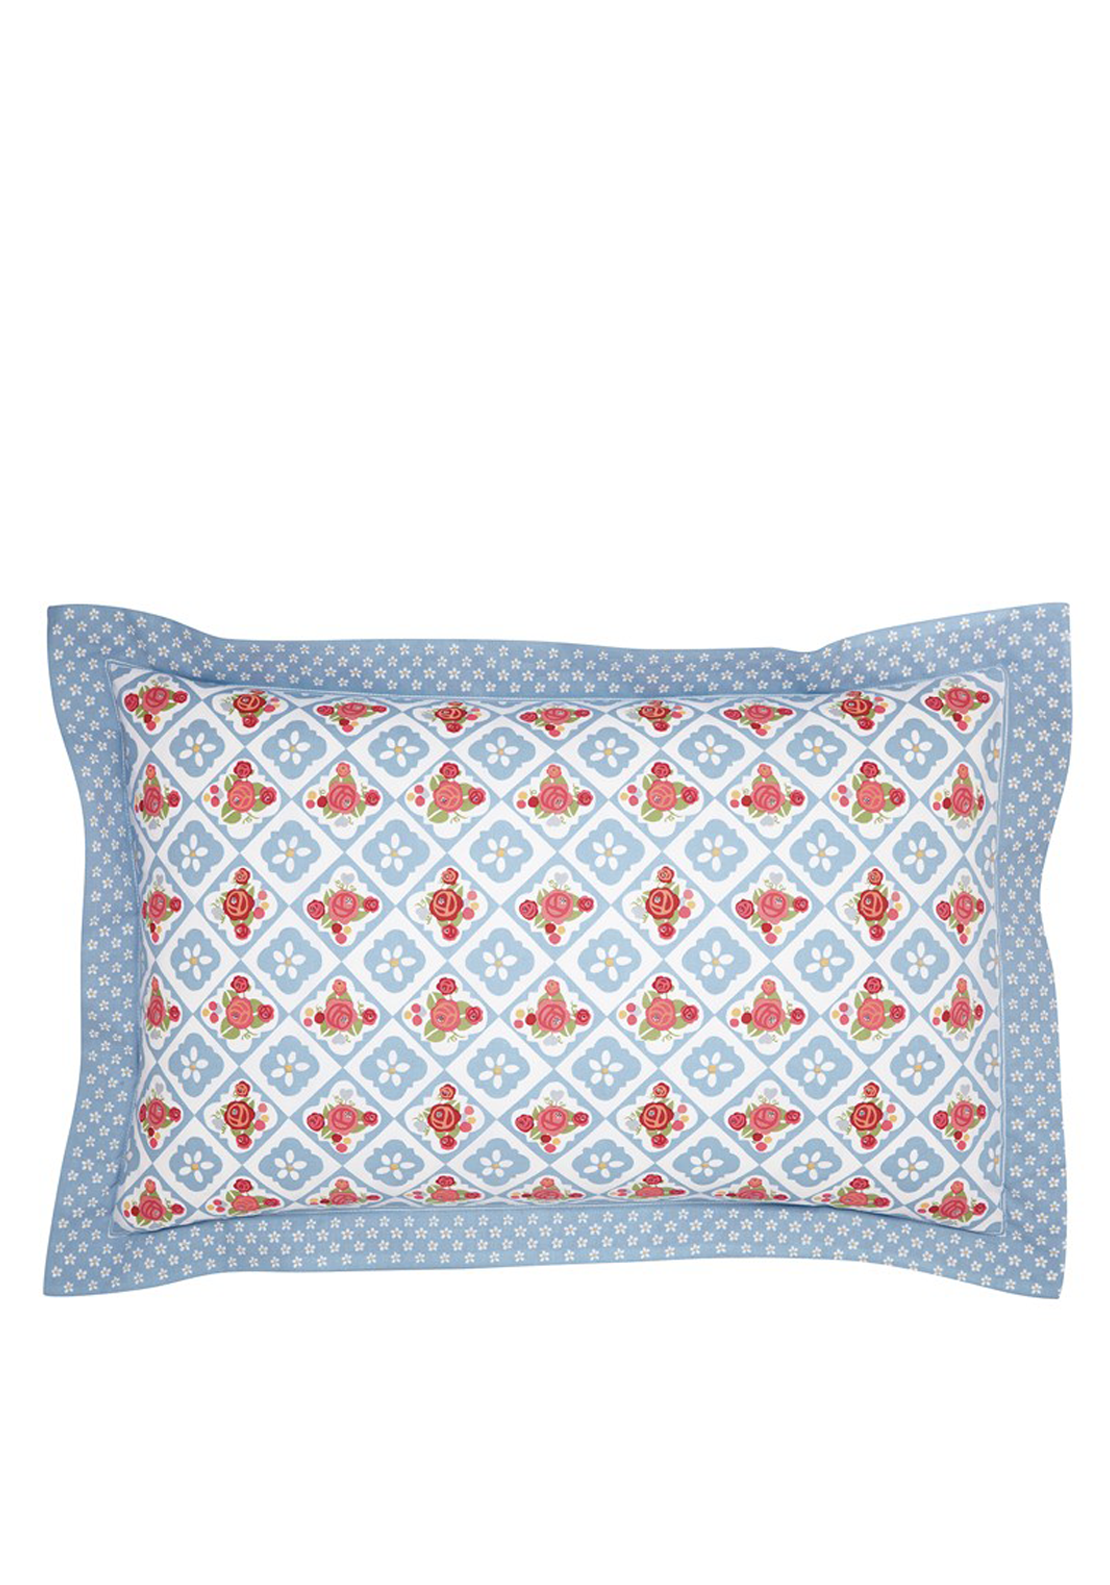 Julie & Dodsworth Sunday Best Oxford Pillowcase, Blue